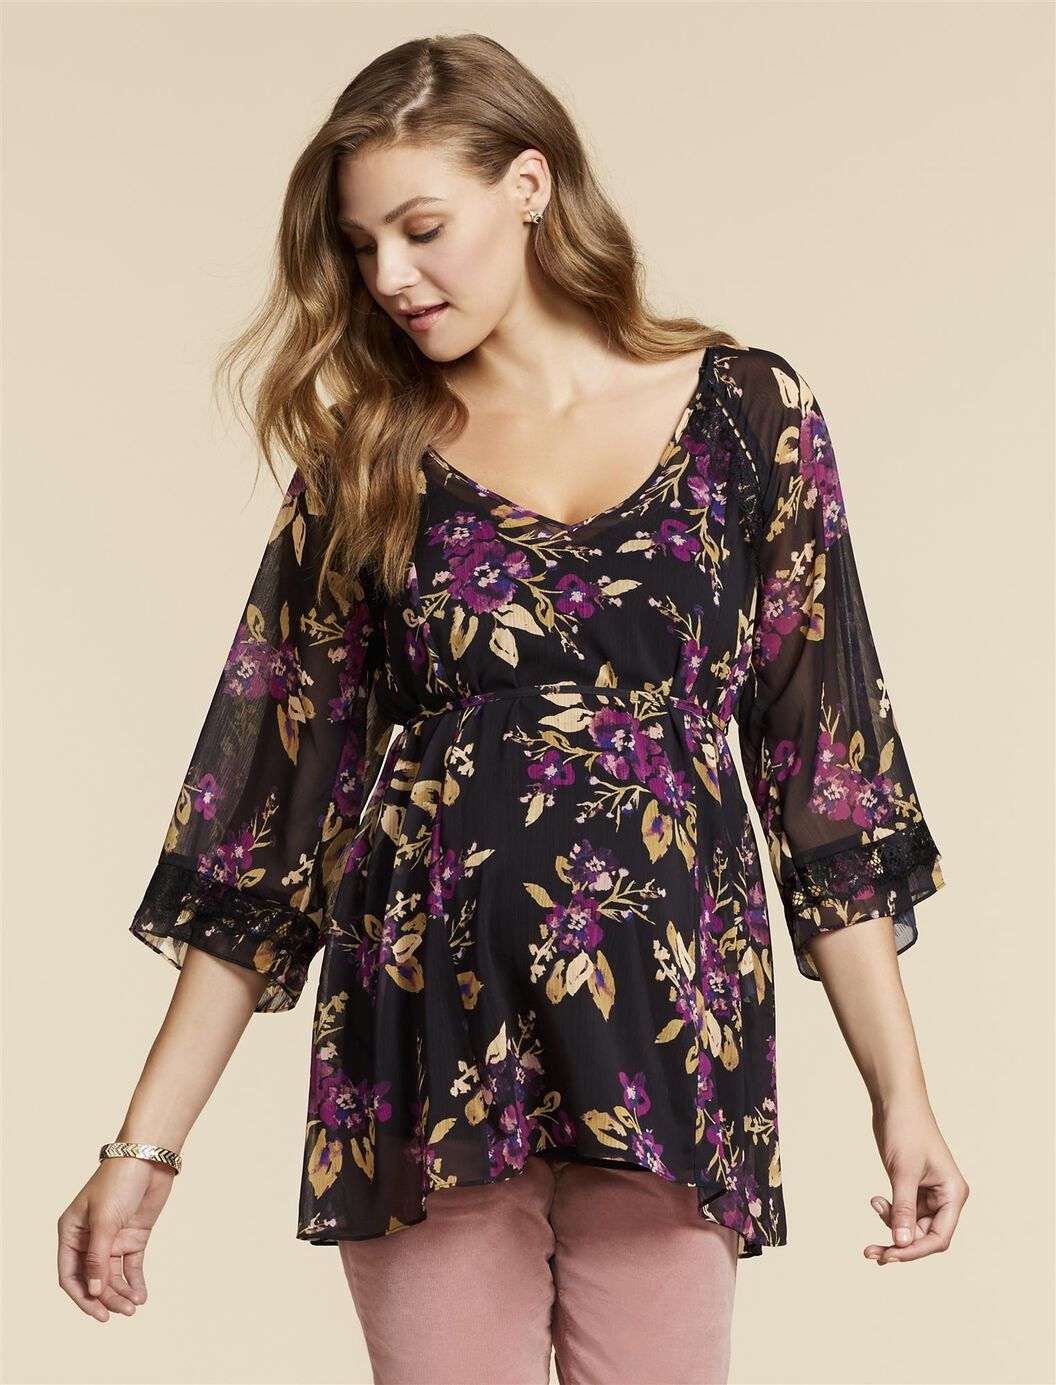 Jessica Simpson Lace Trim Maternity Blouse at Motherhood Maternity in Victor, NY   Tuggl